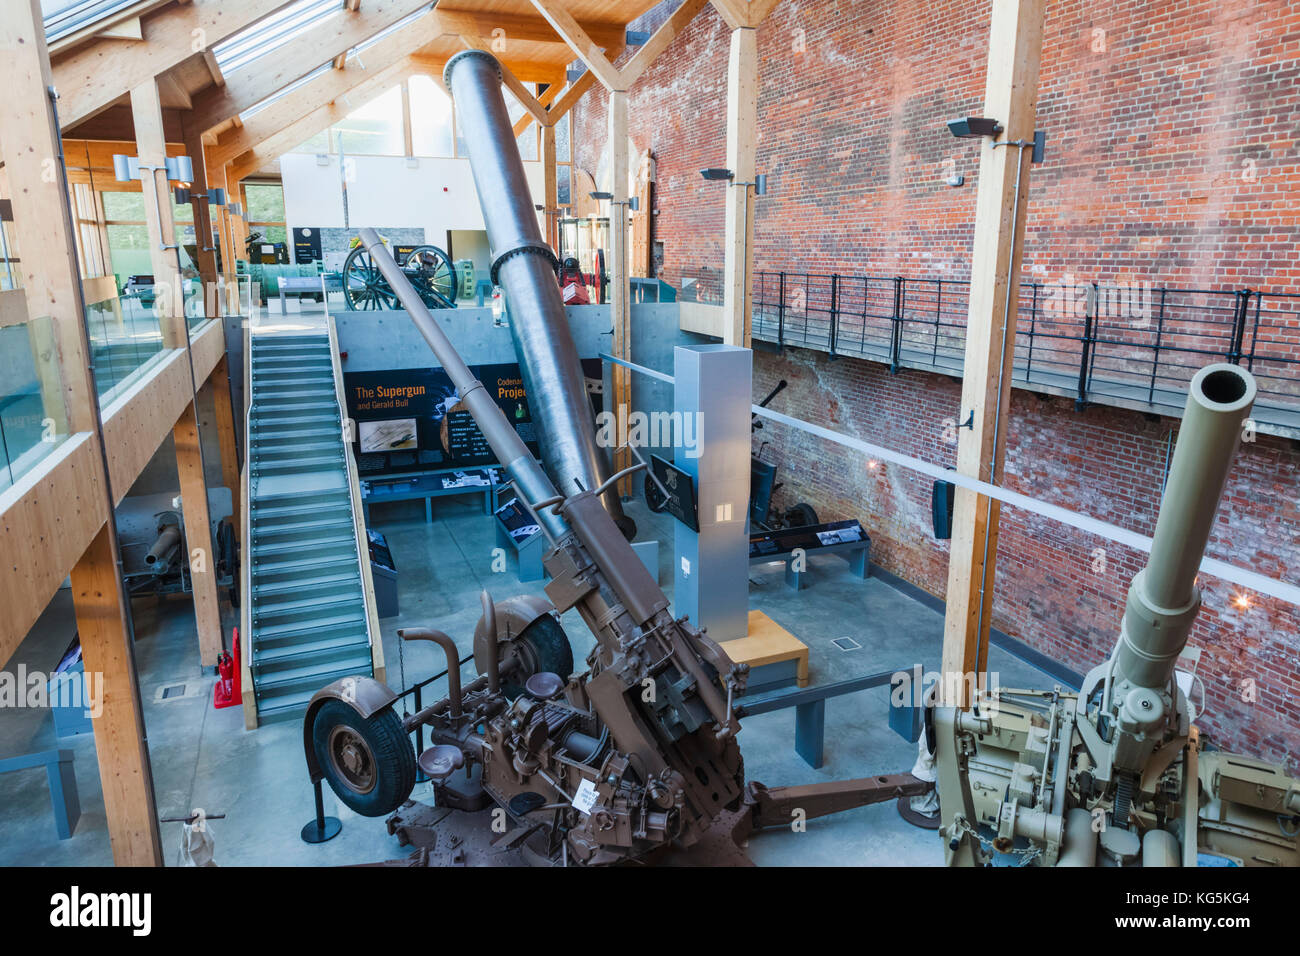 England, Hampshire, Portsmouth, The Royal Amouries Military Museum Fort Nelson, Interior View - Stock Image